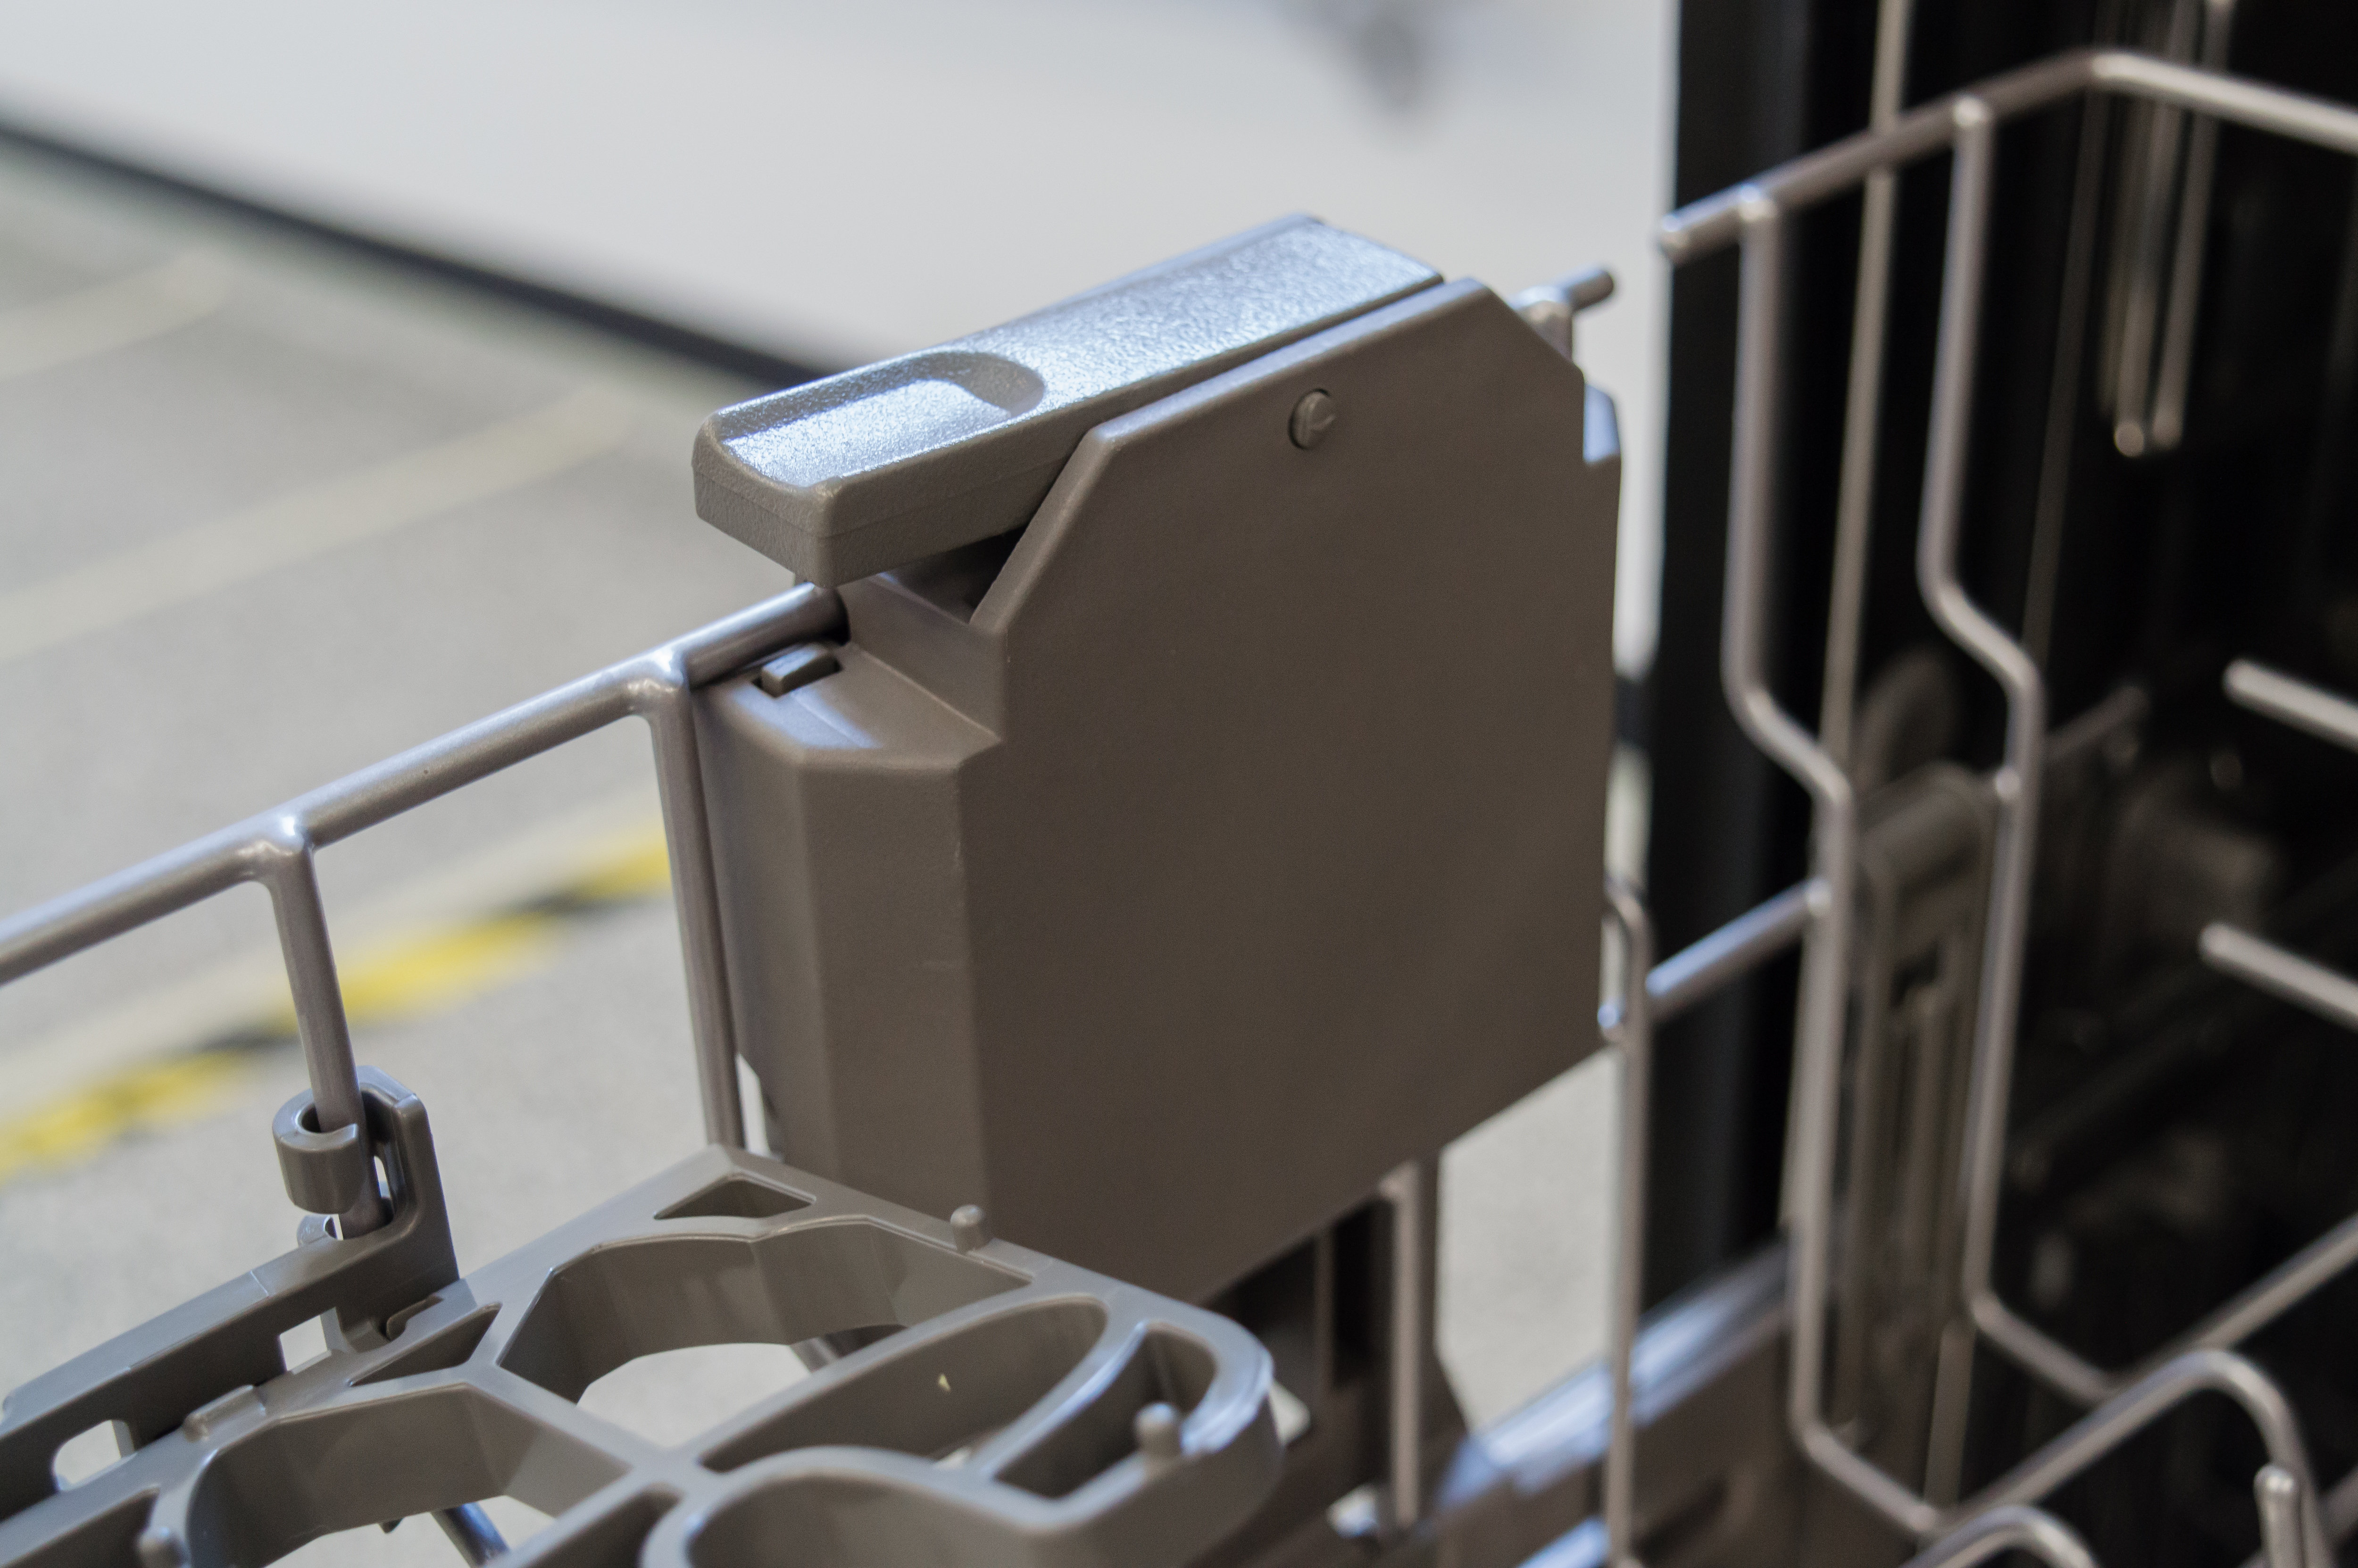 A lever used to adjust the upper rack's height